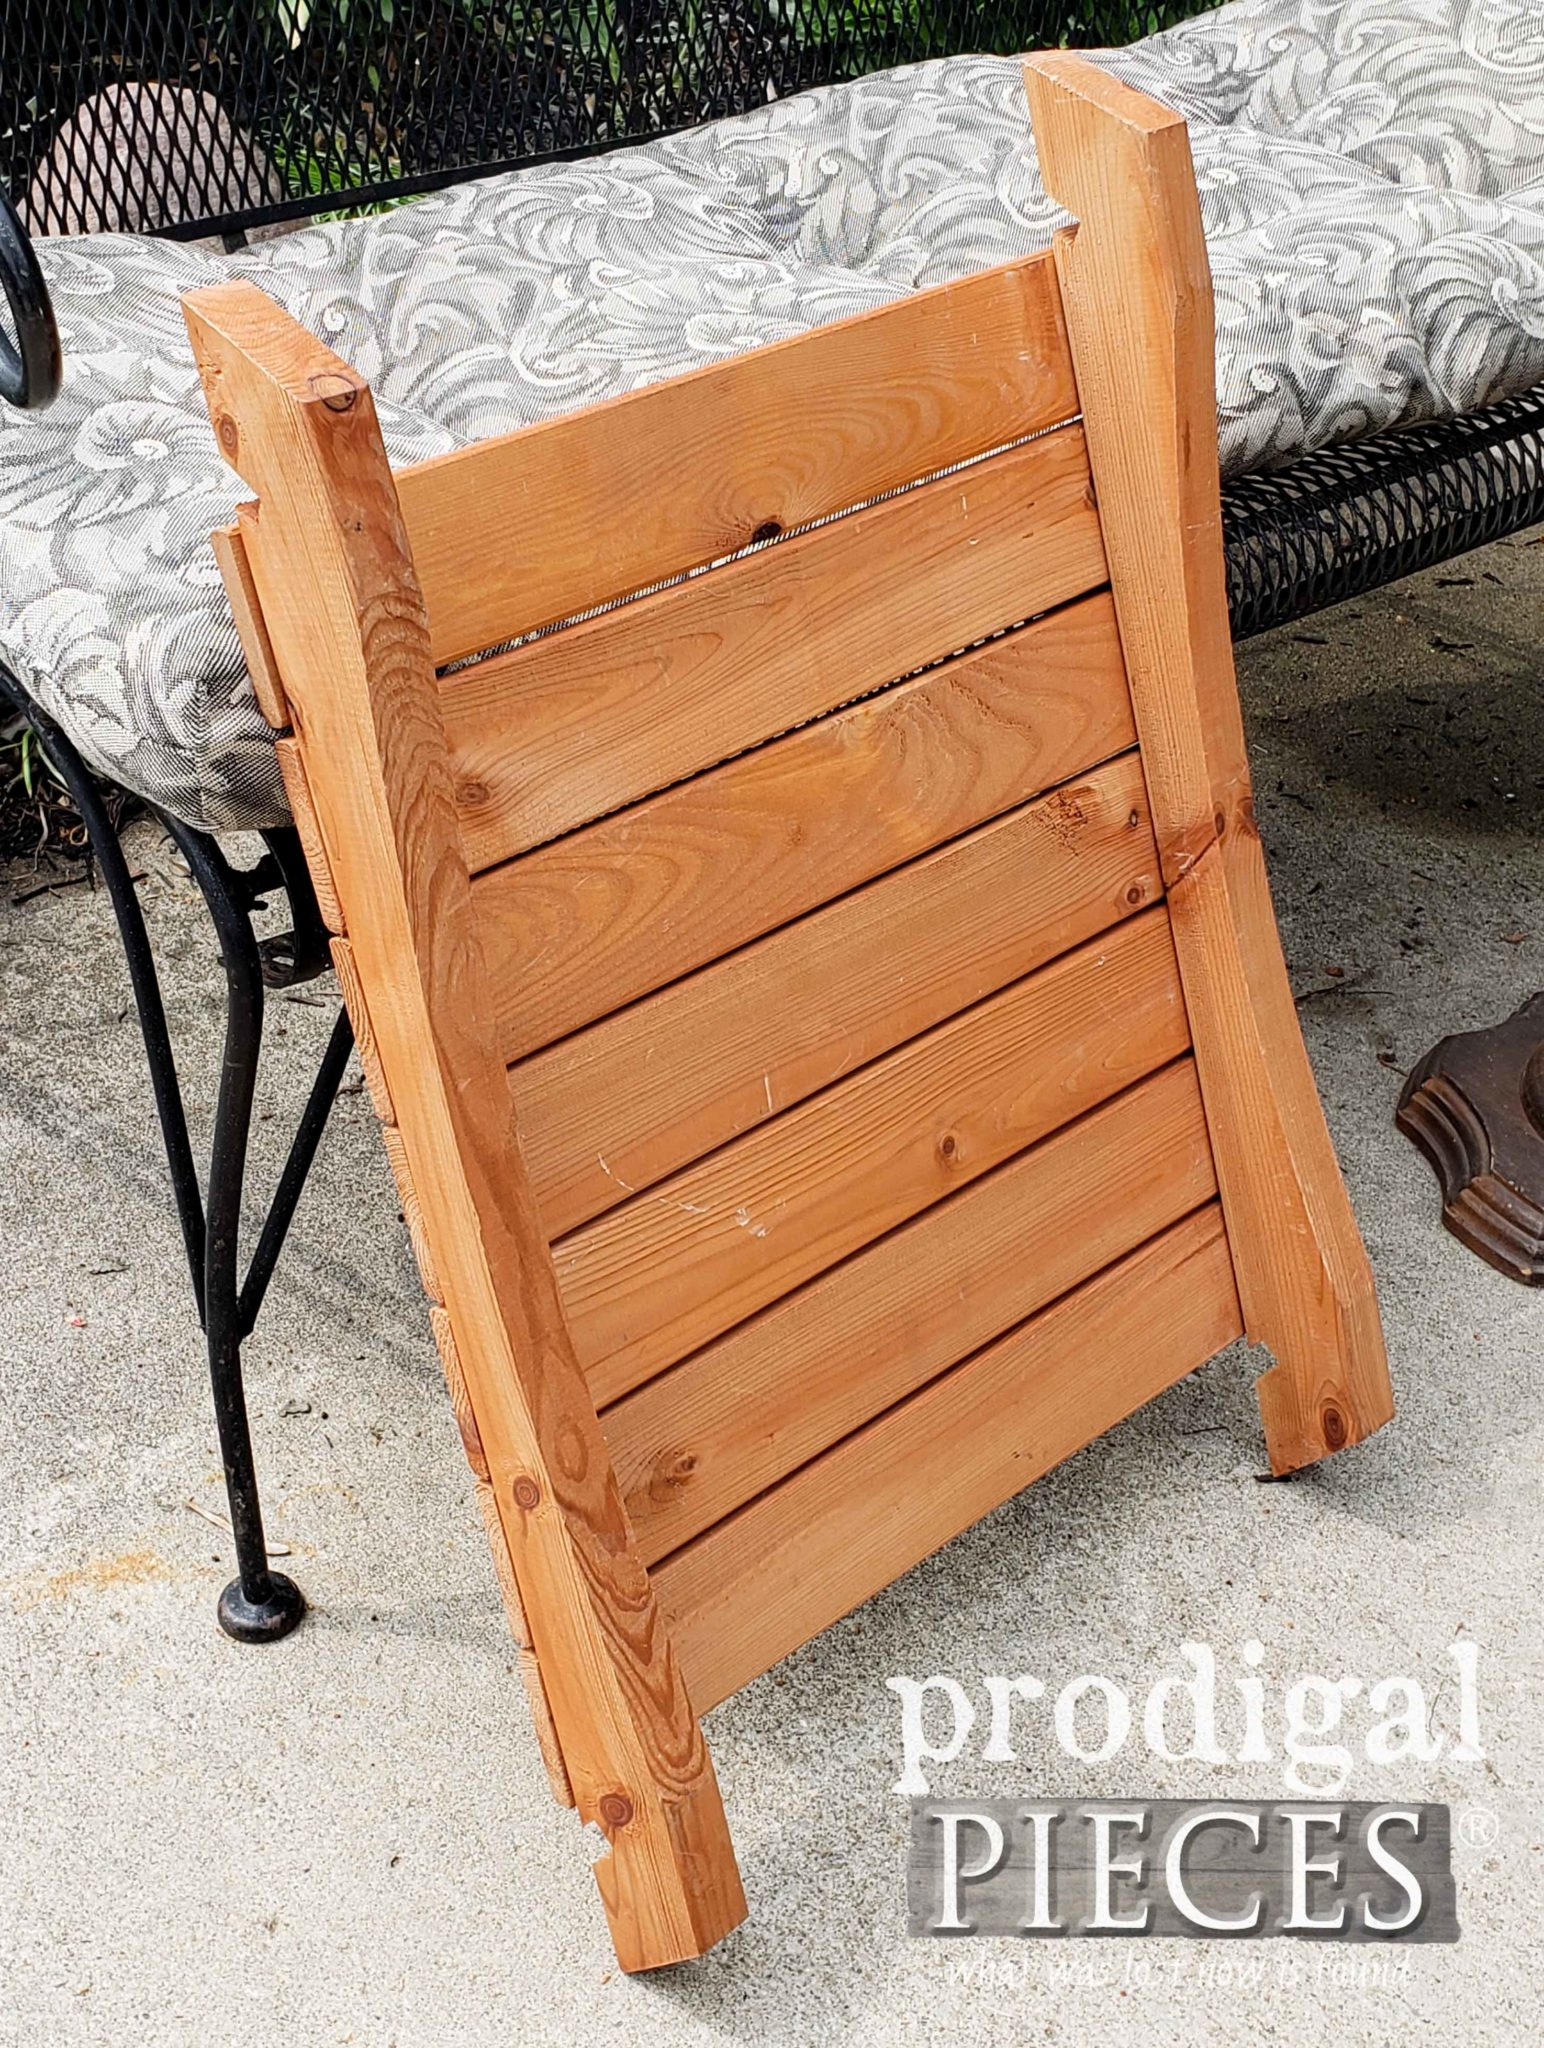 Piece of Chair Part for Upcycled Farmhouse Decor by Larissa of Prodigal Pieces | prodigalpieces.com